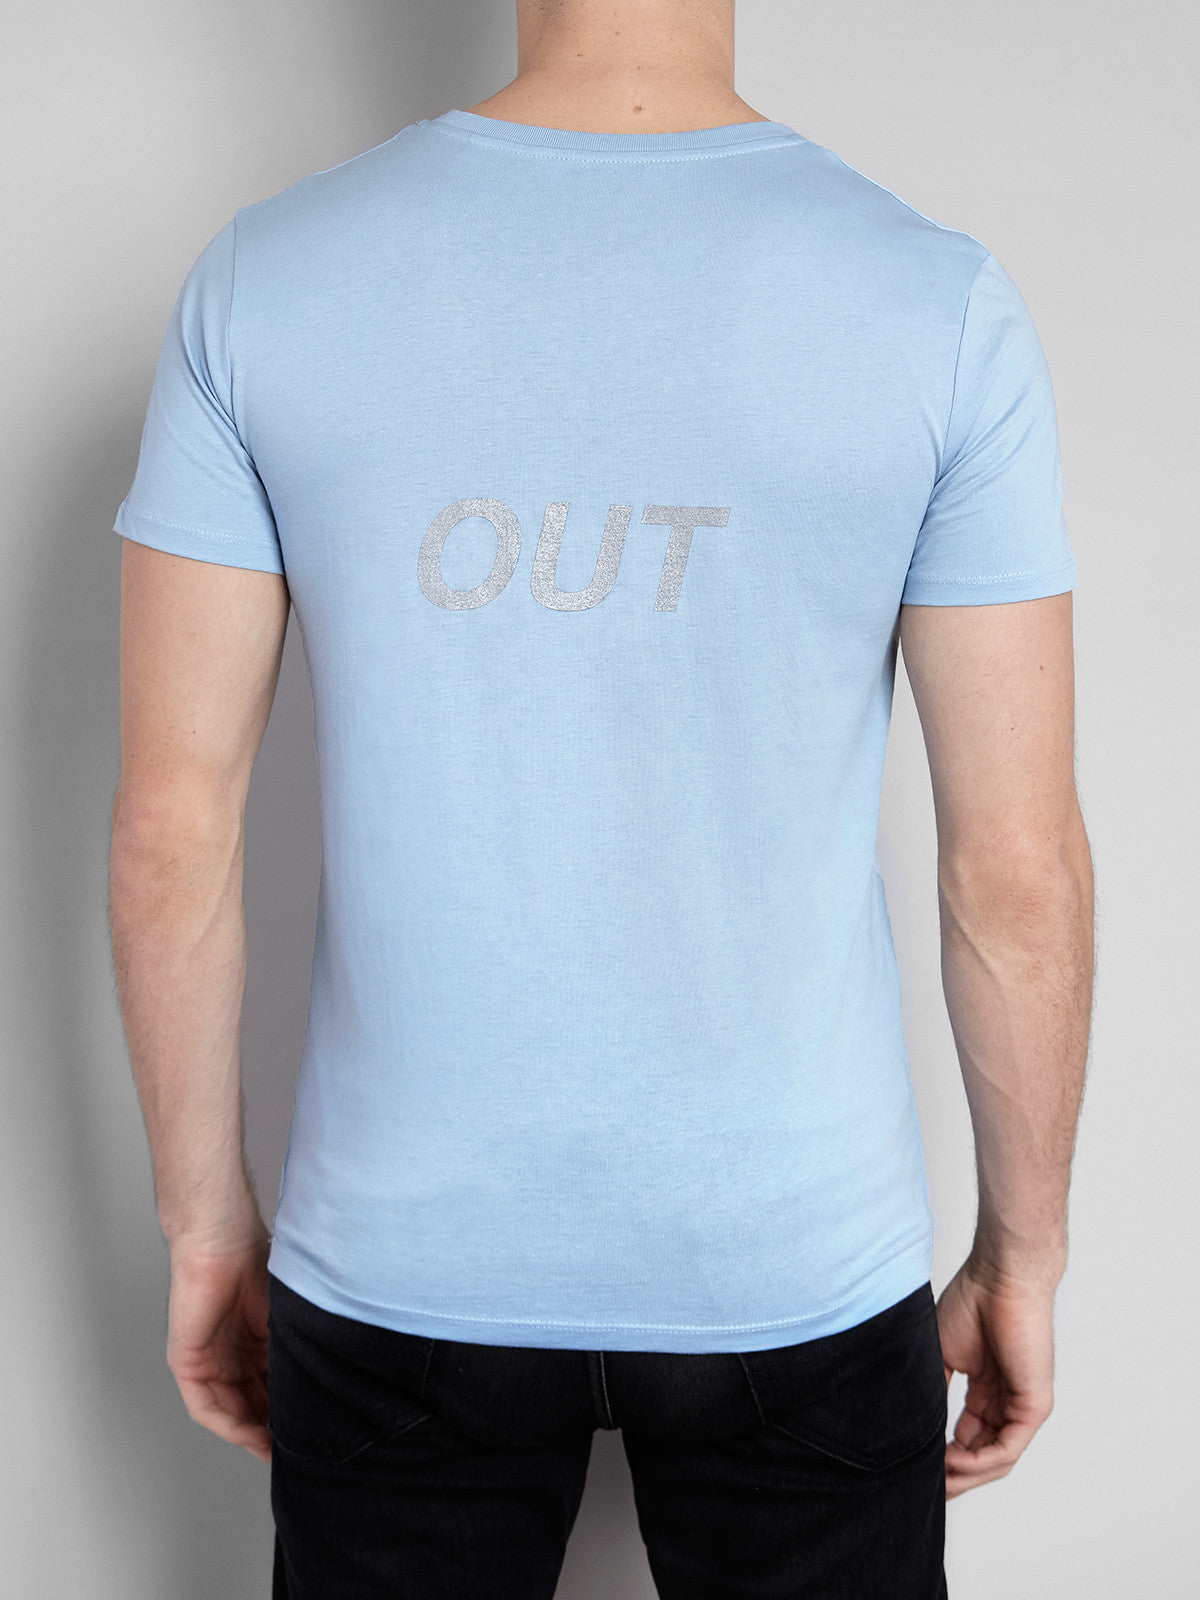 Cotton CHILL OUT T-shirt